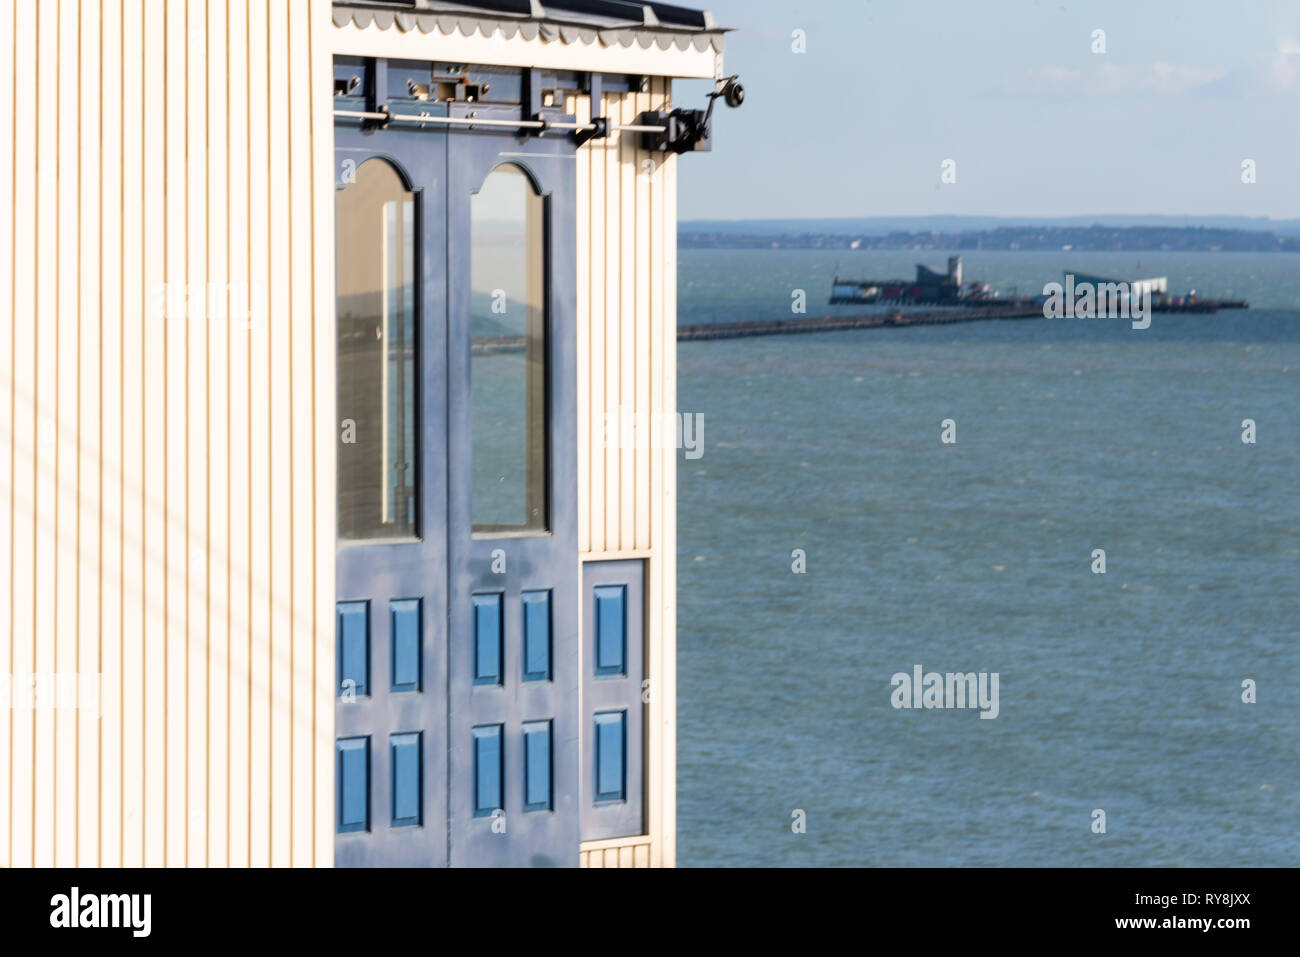 Southend Cliff Lift and Southend Pier. Cliff top restored station building overlooking the Thames Estuary, Southend on Sea, Essex, UK. Space for copy - Stock Image